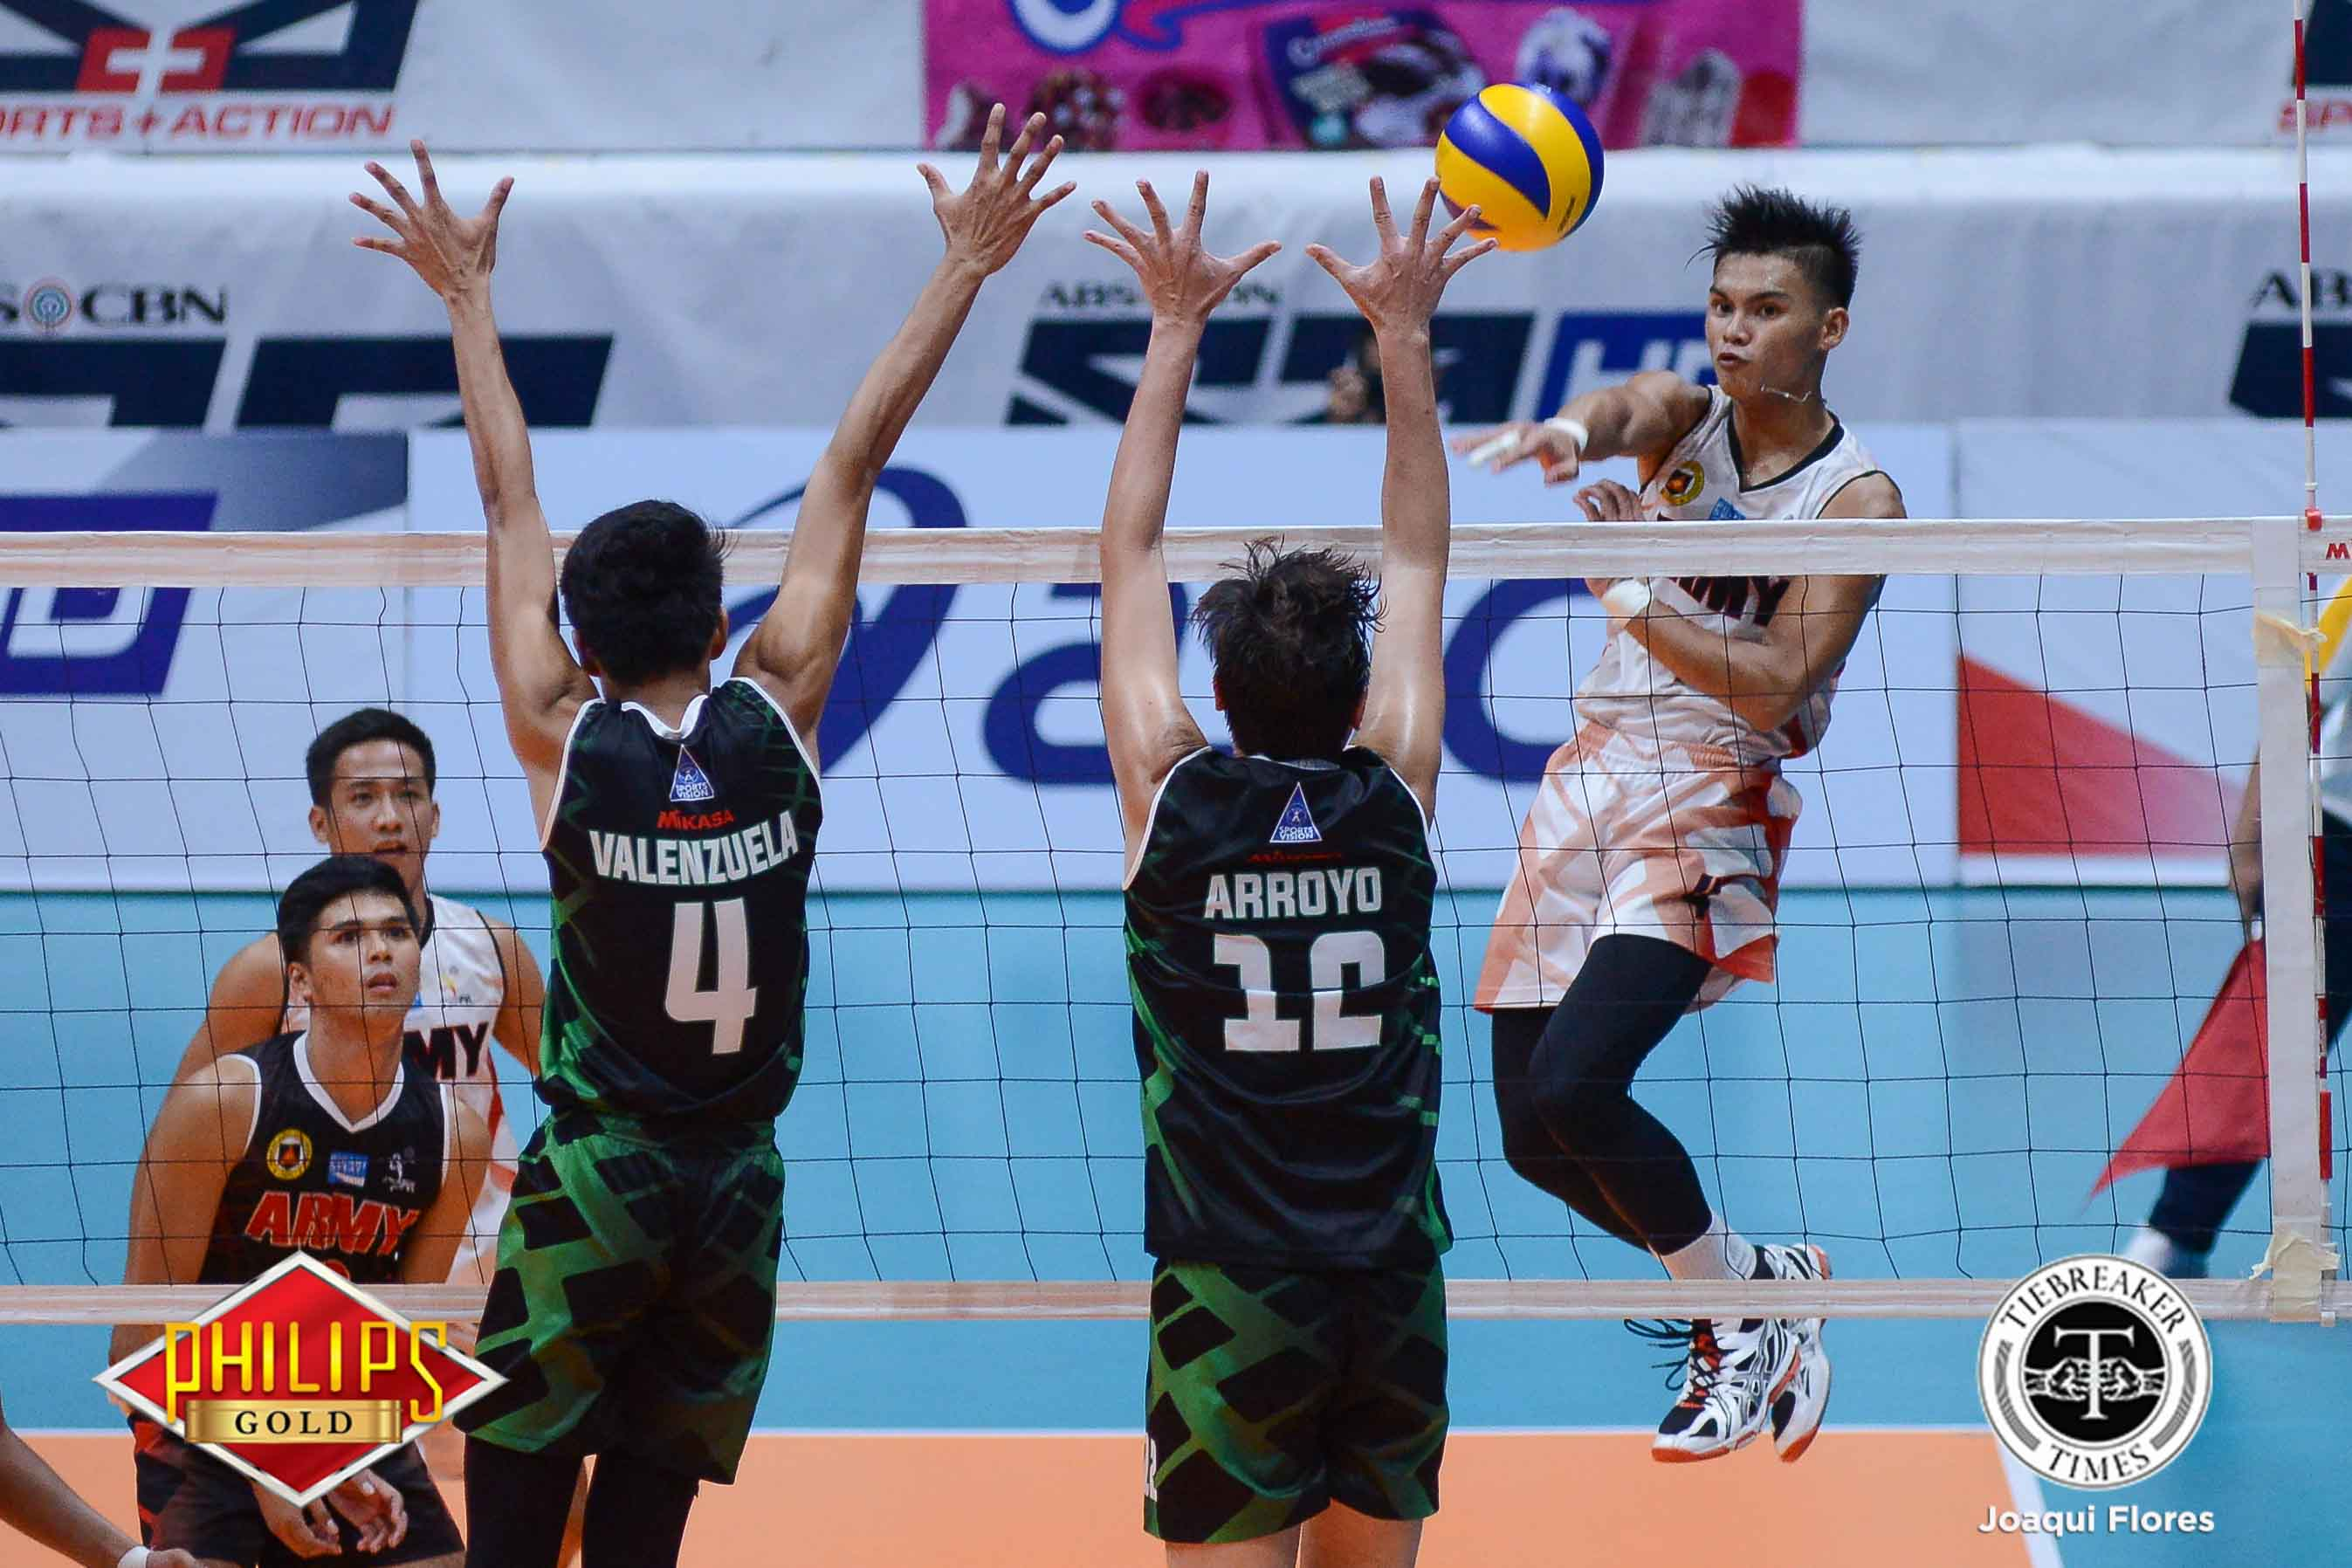 Tiebreaker Times Army troops to semis with win over IEM News PVL Volleyball  Timothy Tajanlangit Romnick Rico Rico De Guzman Philippine Army Troopers Jason Uy IEM Volley Masters Greg Dolor Ernesto Balubar Army Troopers Anthony Arbasto 2017 PVL Season 2017 PVL Men's Reinforced Conference